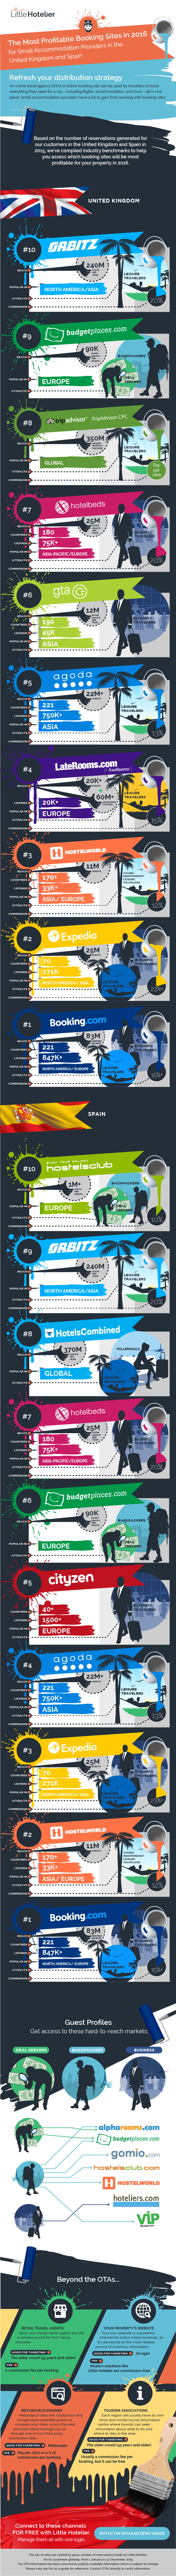 The Best Hotel Booking Sites For Uk And Spanish Small Accommodation Providers Infographic